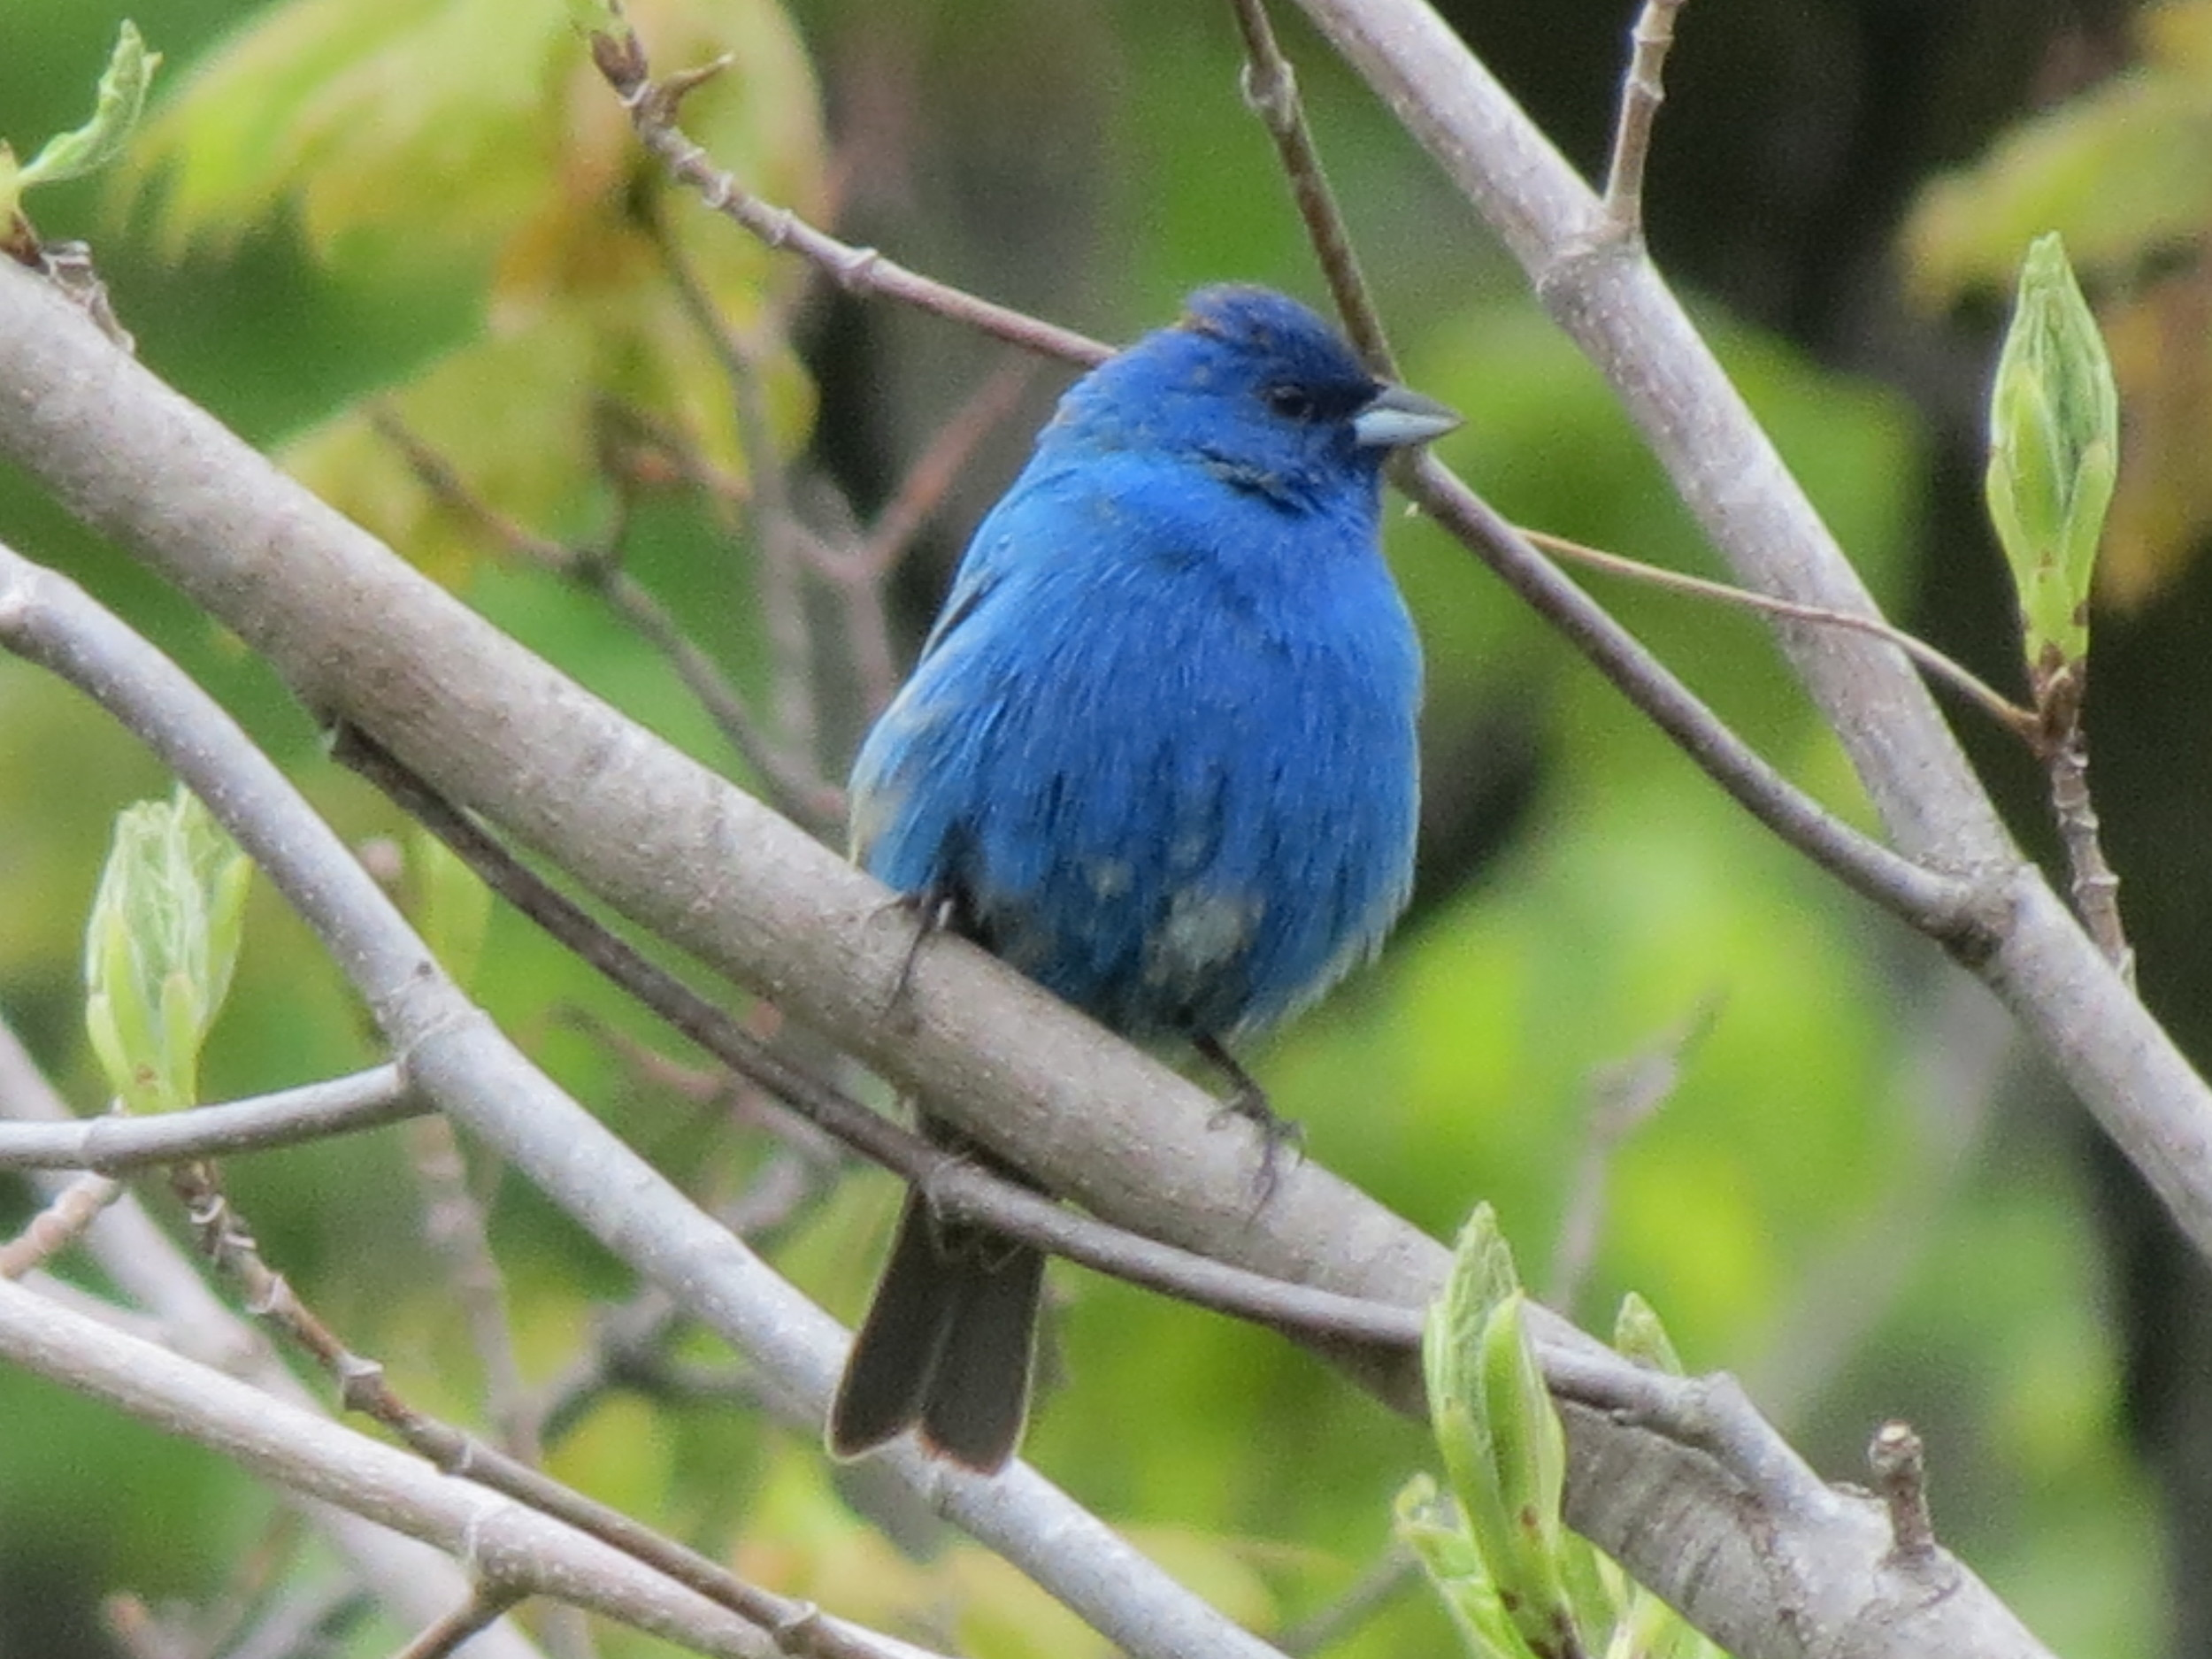 Lovely blue of the Indigo Bunting against the beautiful green!